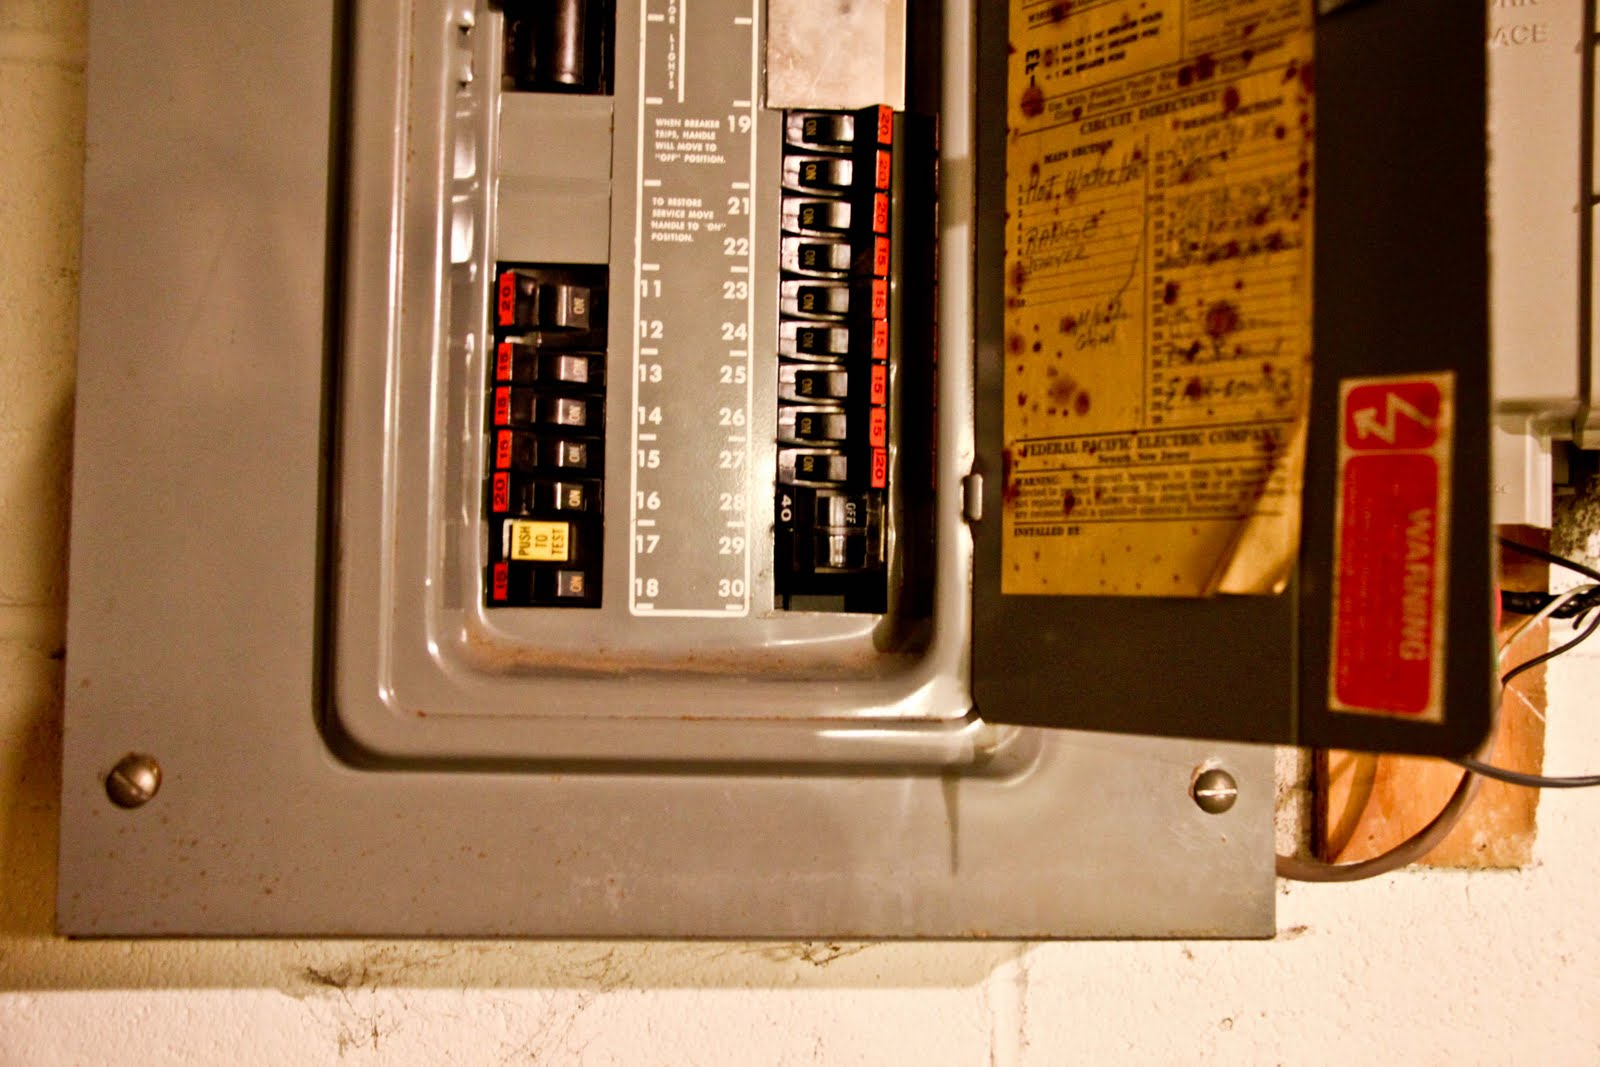 IMG_4614 replacing fuse on central ac unit work space how to reset fuse box in house at soozxer.org